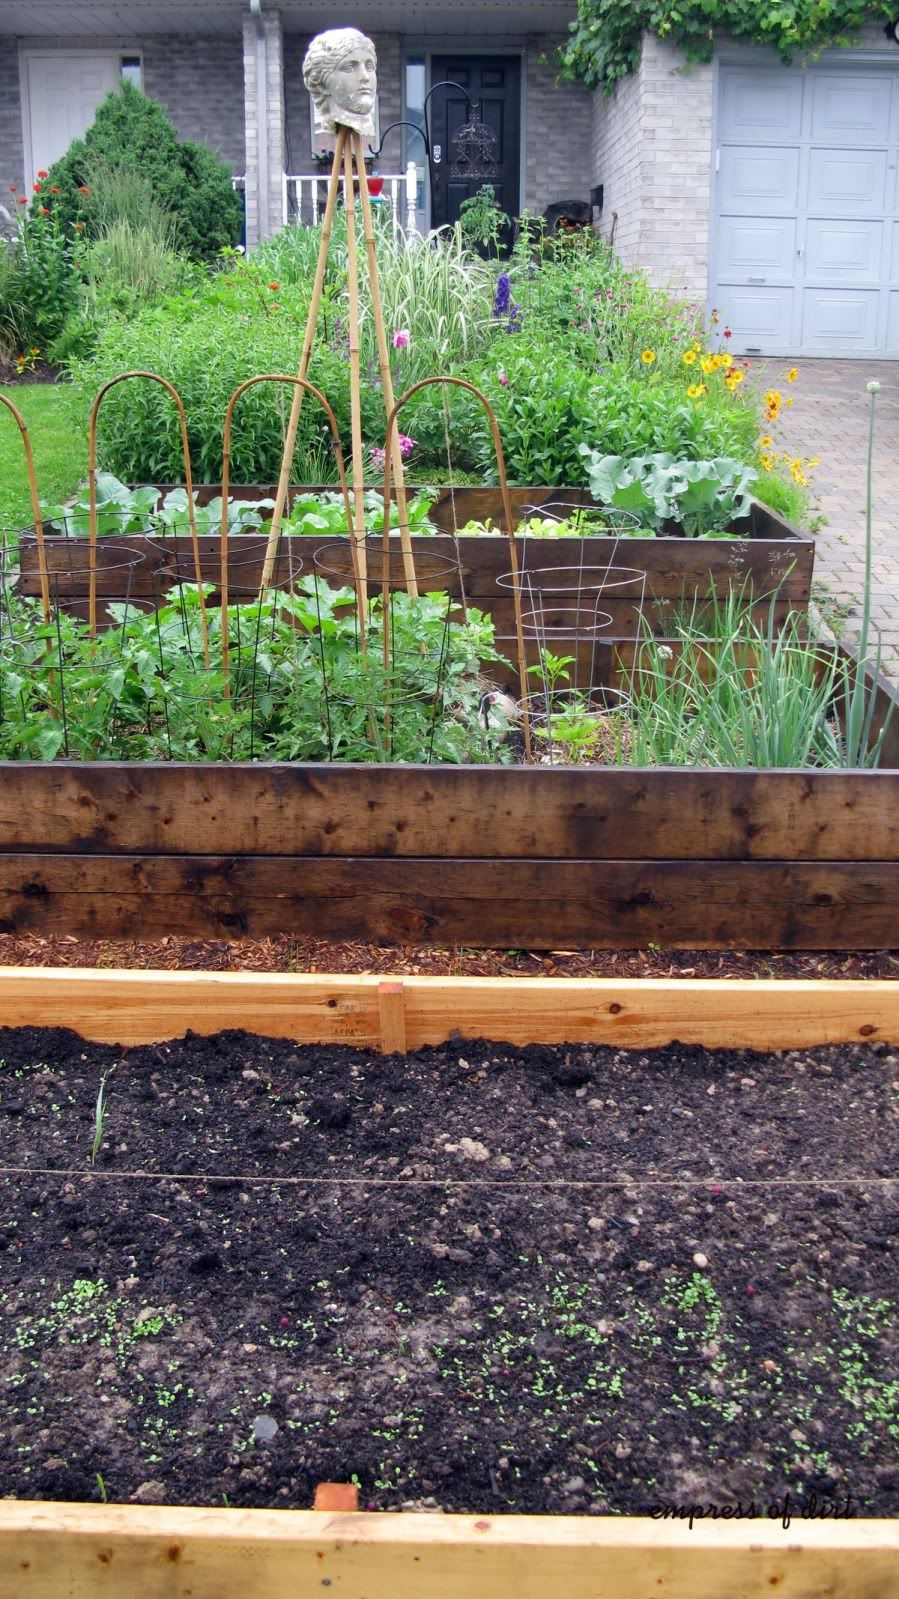 4a708c6aaec49c5a44eaf21ea98921d8 - Why Do Gardeners Use Raised Beds